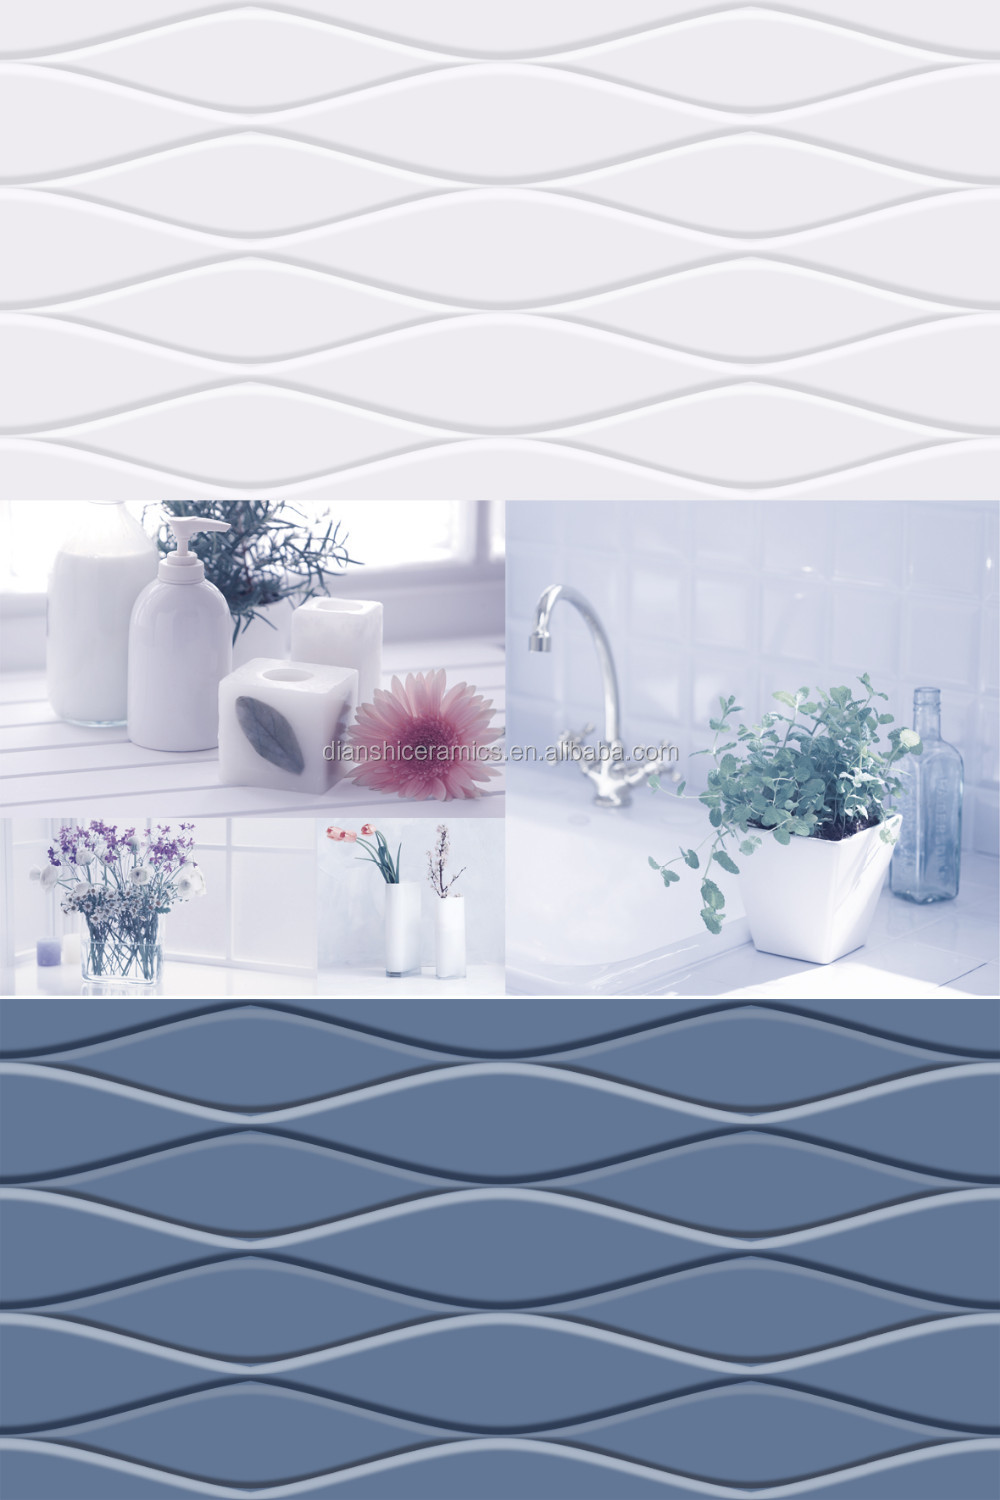 living rooms interior wall tile design,3d kitchen wall tile , toilet ...